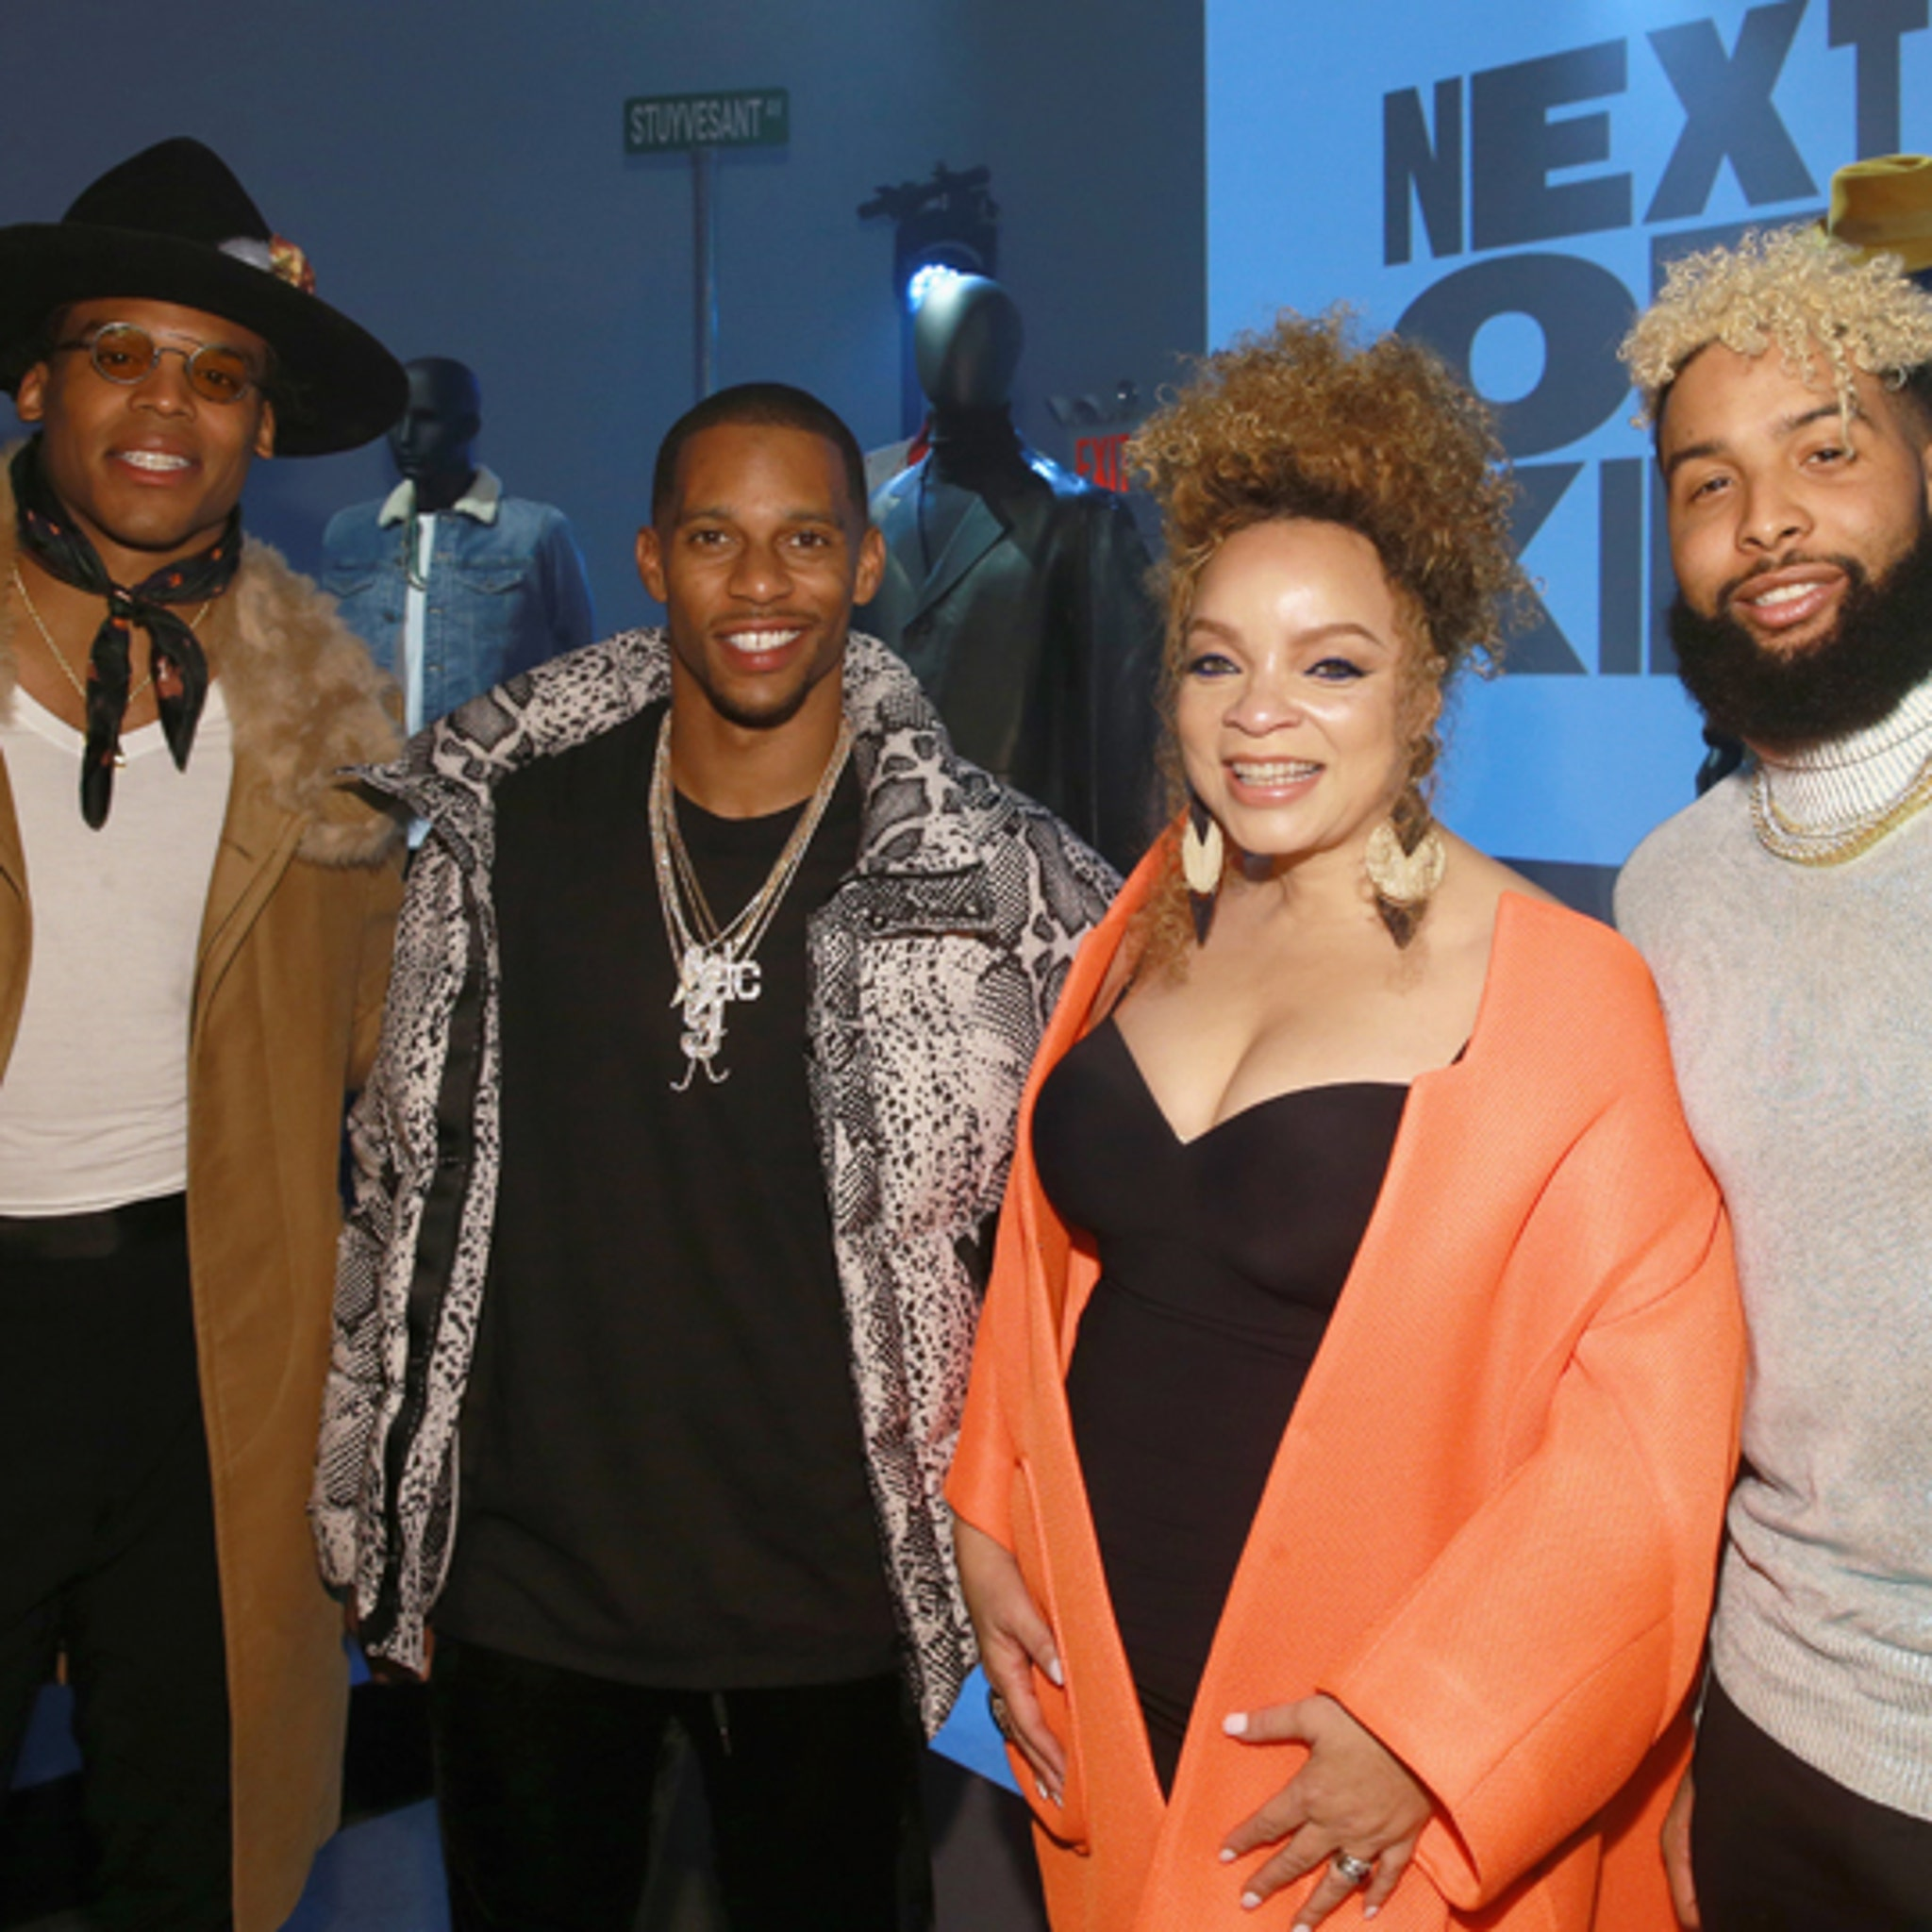 cd5f6509a60043 Cam Newton Hits NY Fashion Show With Odell Beckham